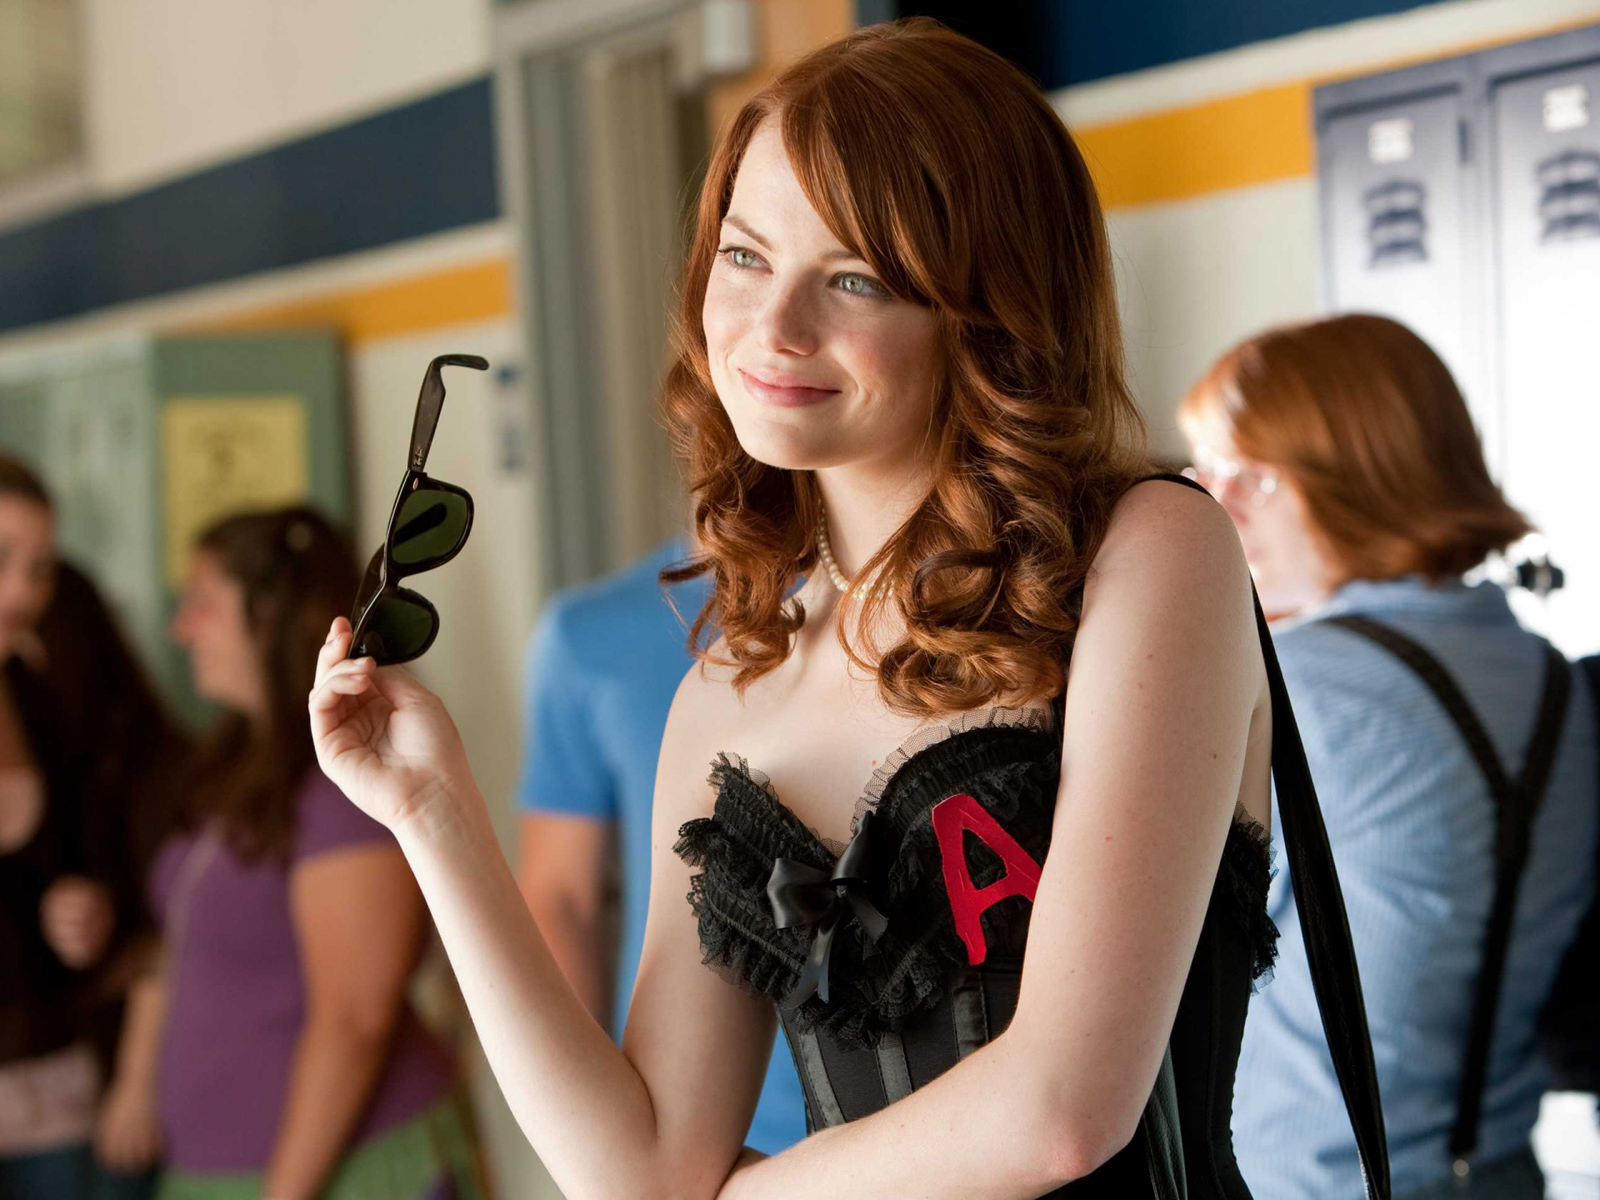 Emma Stone in Easy A 258.58 Kb